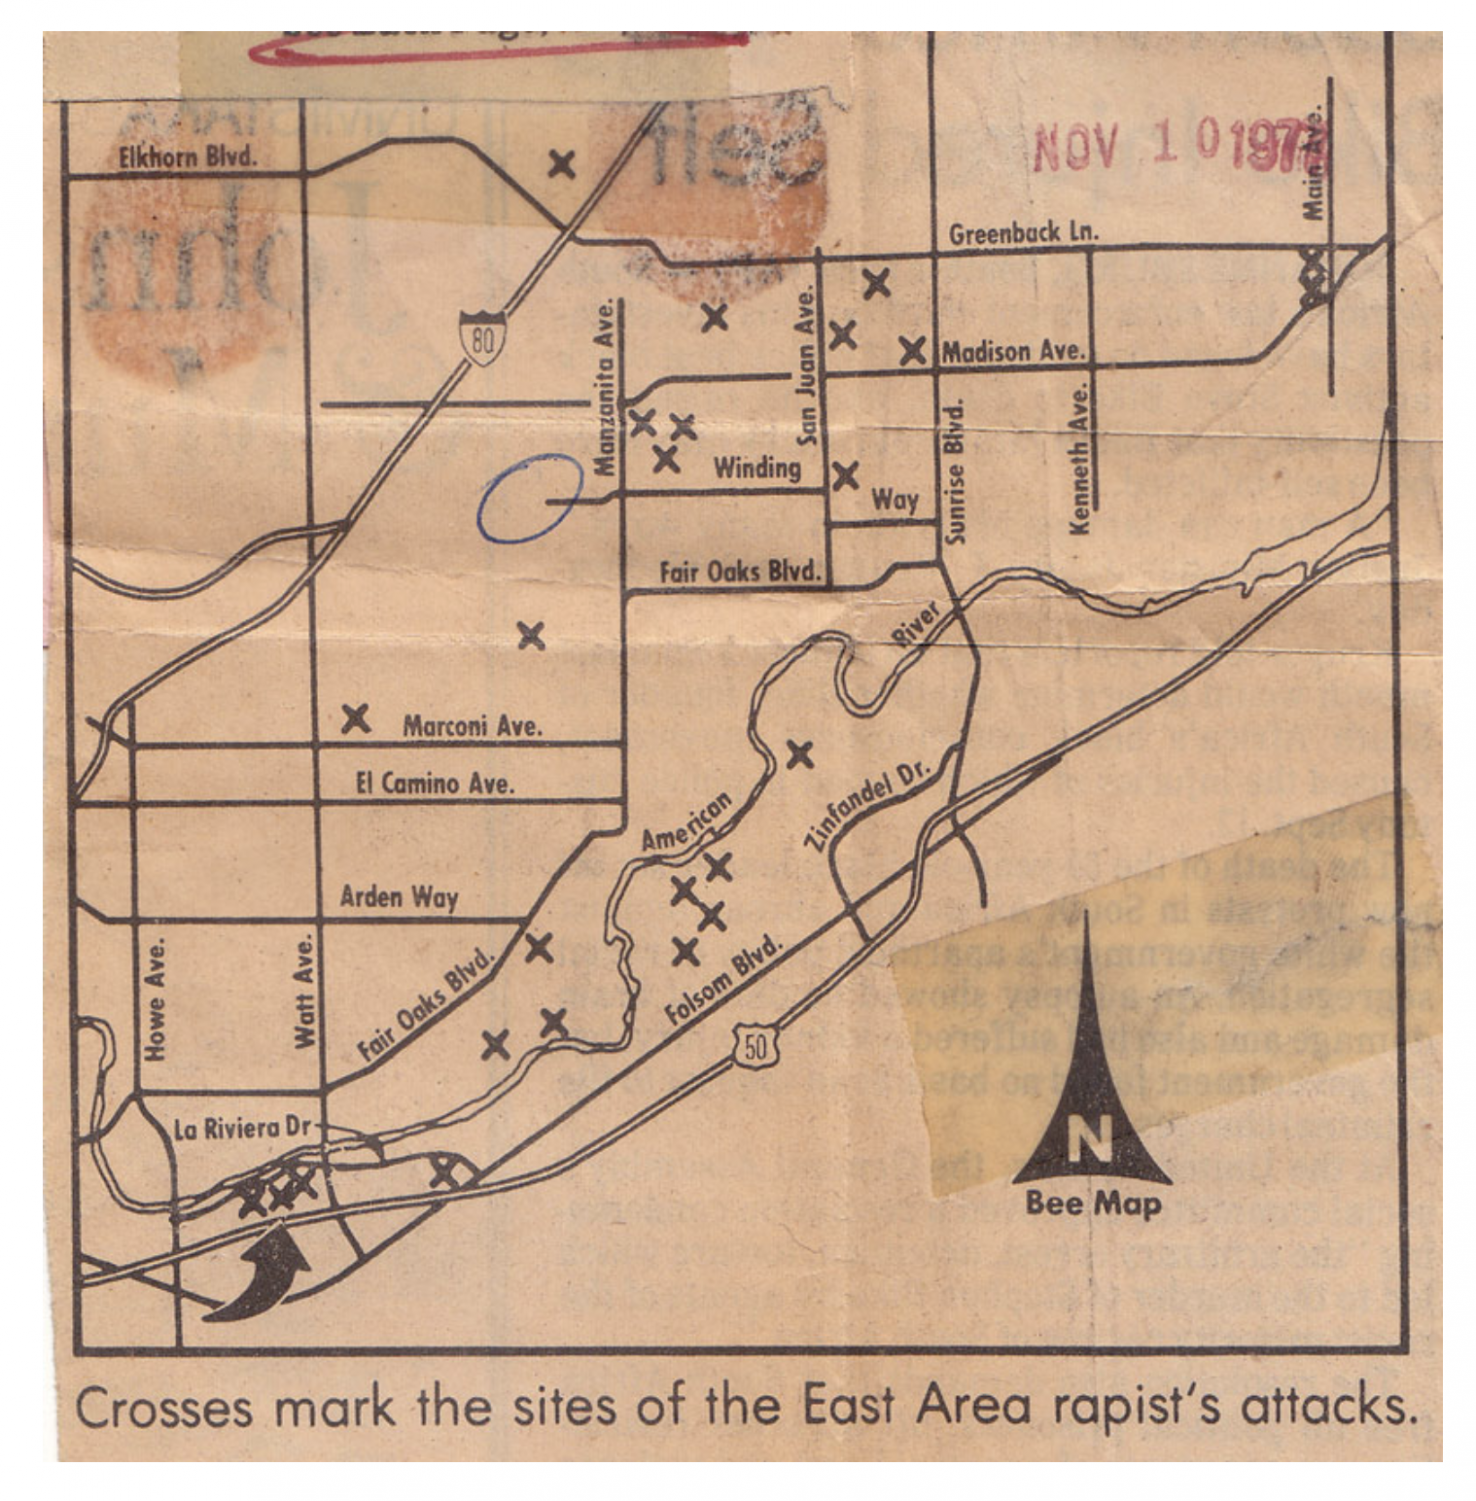 A+map+from+November+1977+Sacramento+Bee+showing+where+the+East+Area+Rapist+struck.